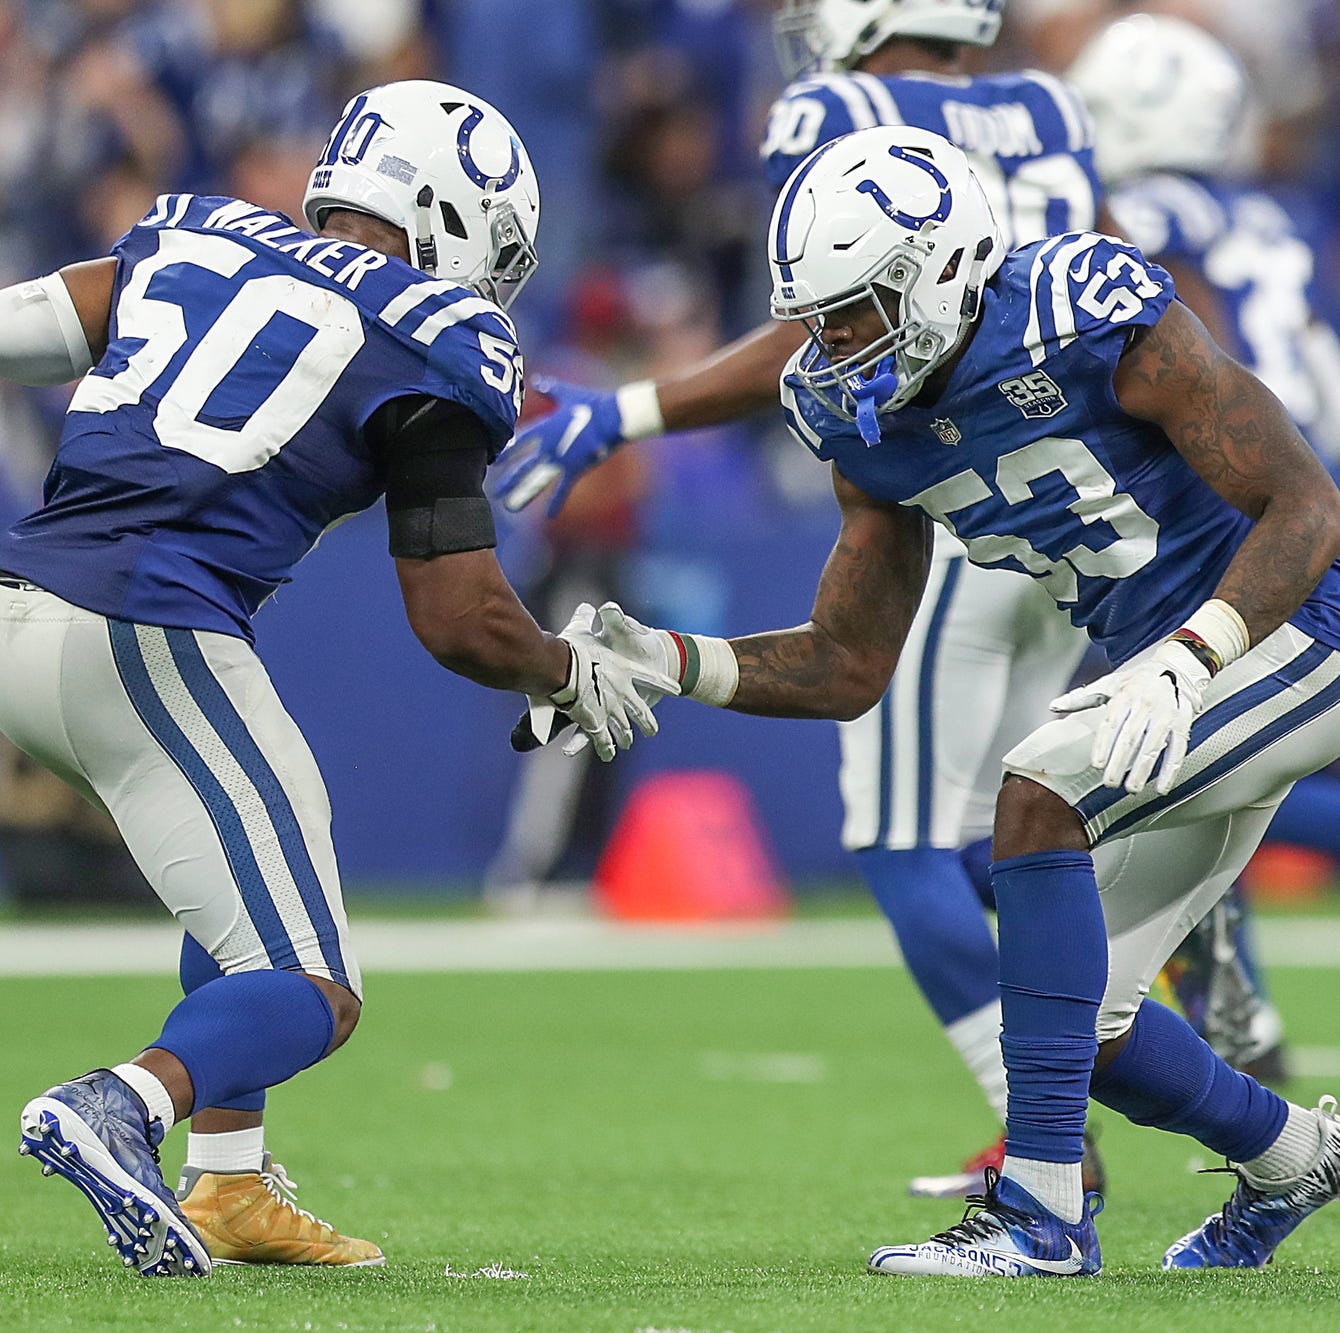 10 ways the Colts 'unreal' defense corralled Zeke and the Cowboys